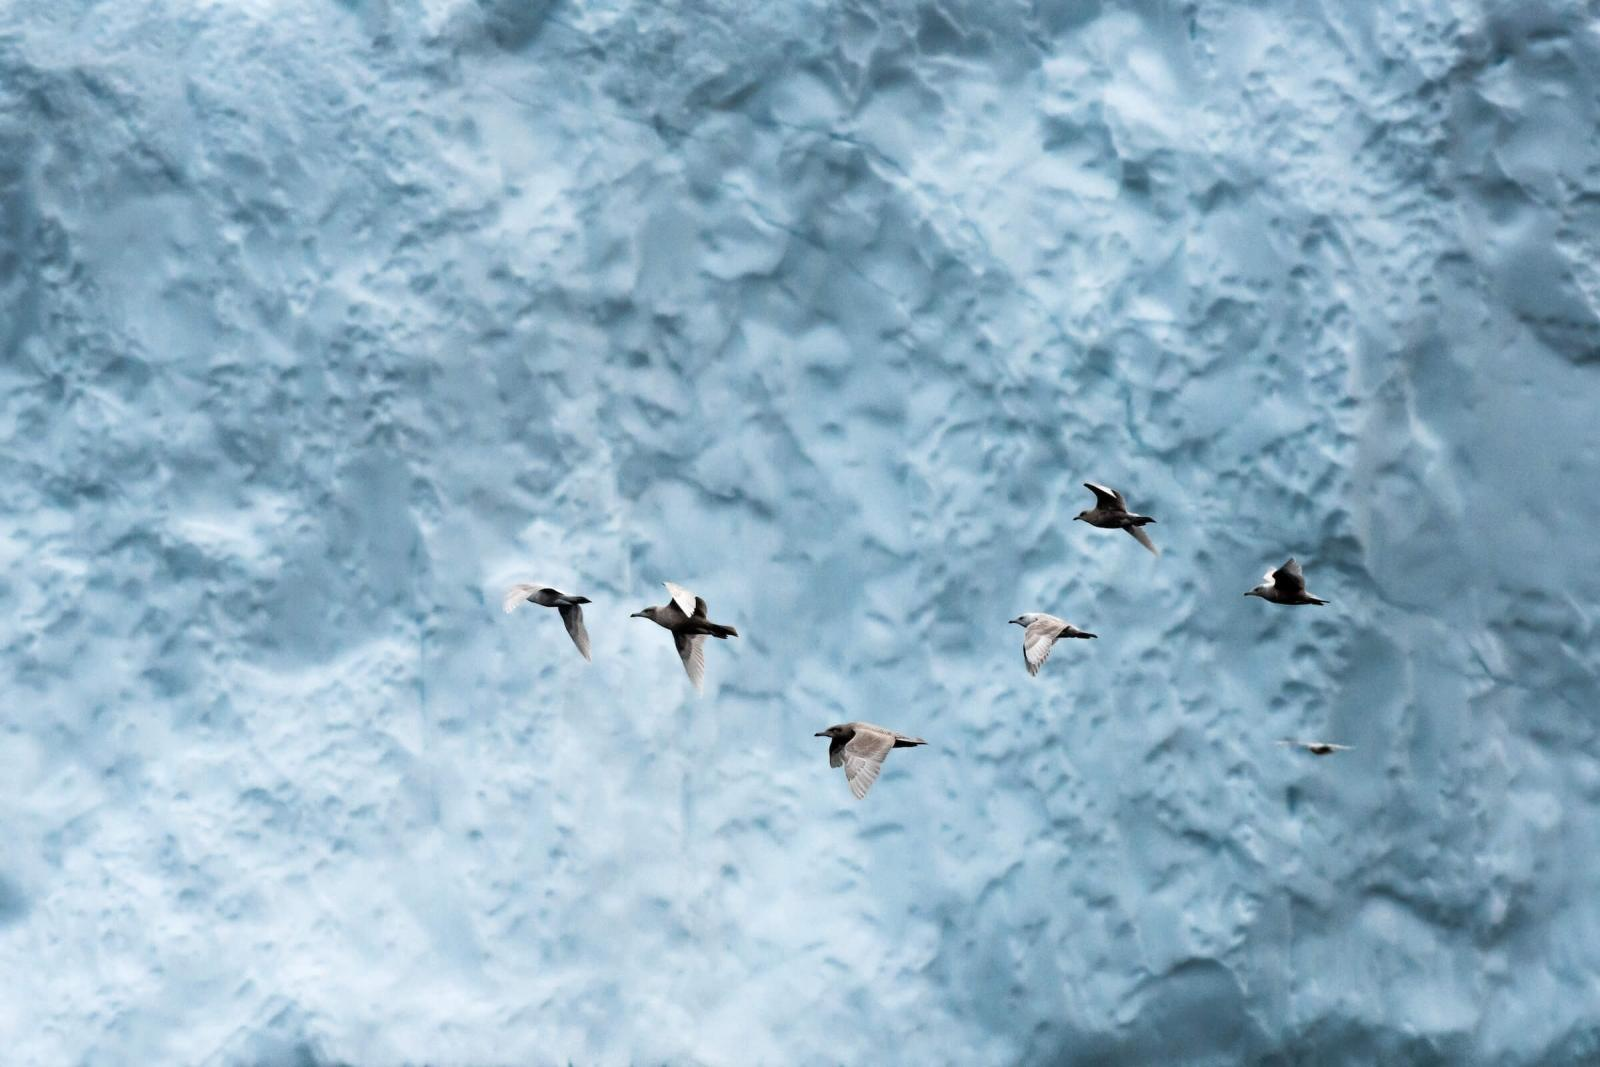 A flock of fulmar's took of as an iceberg close to them collapsed. I was amazed by the amount and variety of wildlife the Disko Bay has to offer. By Stian Klo